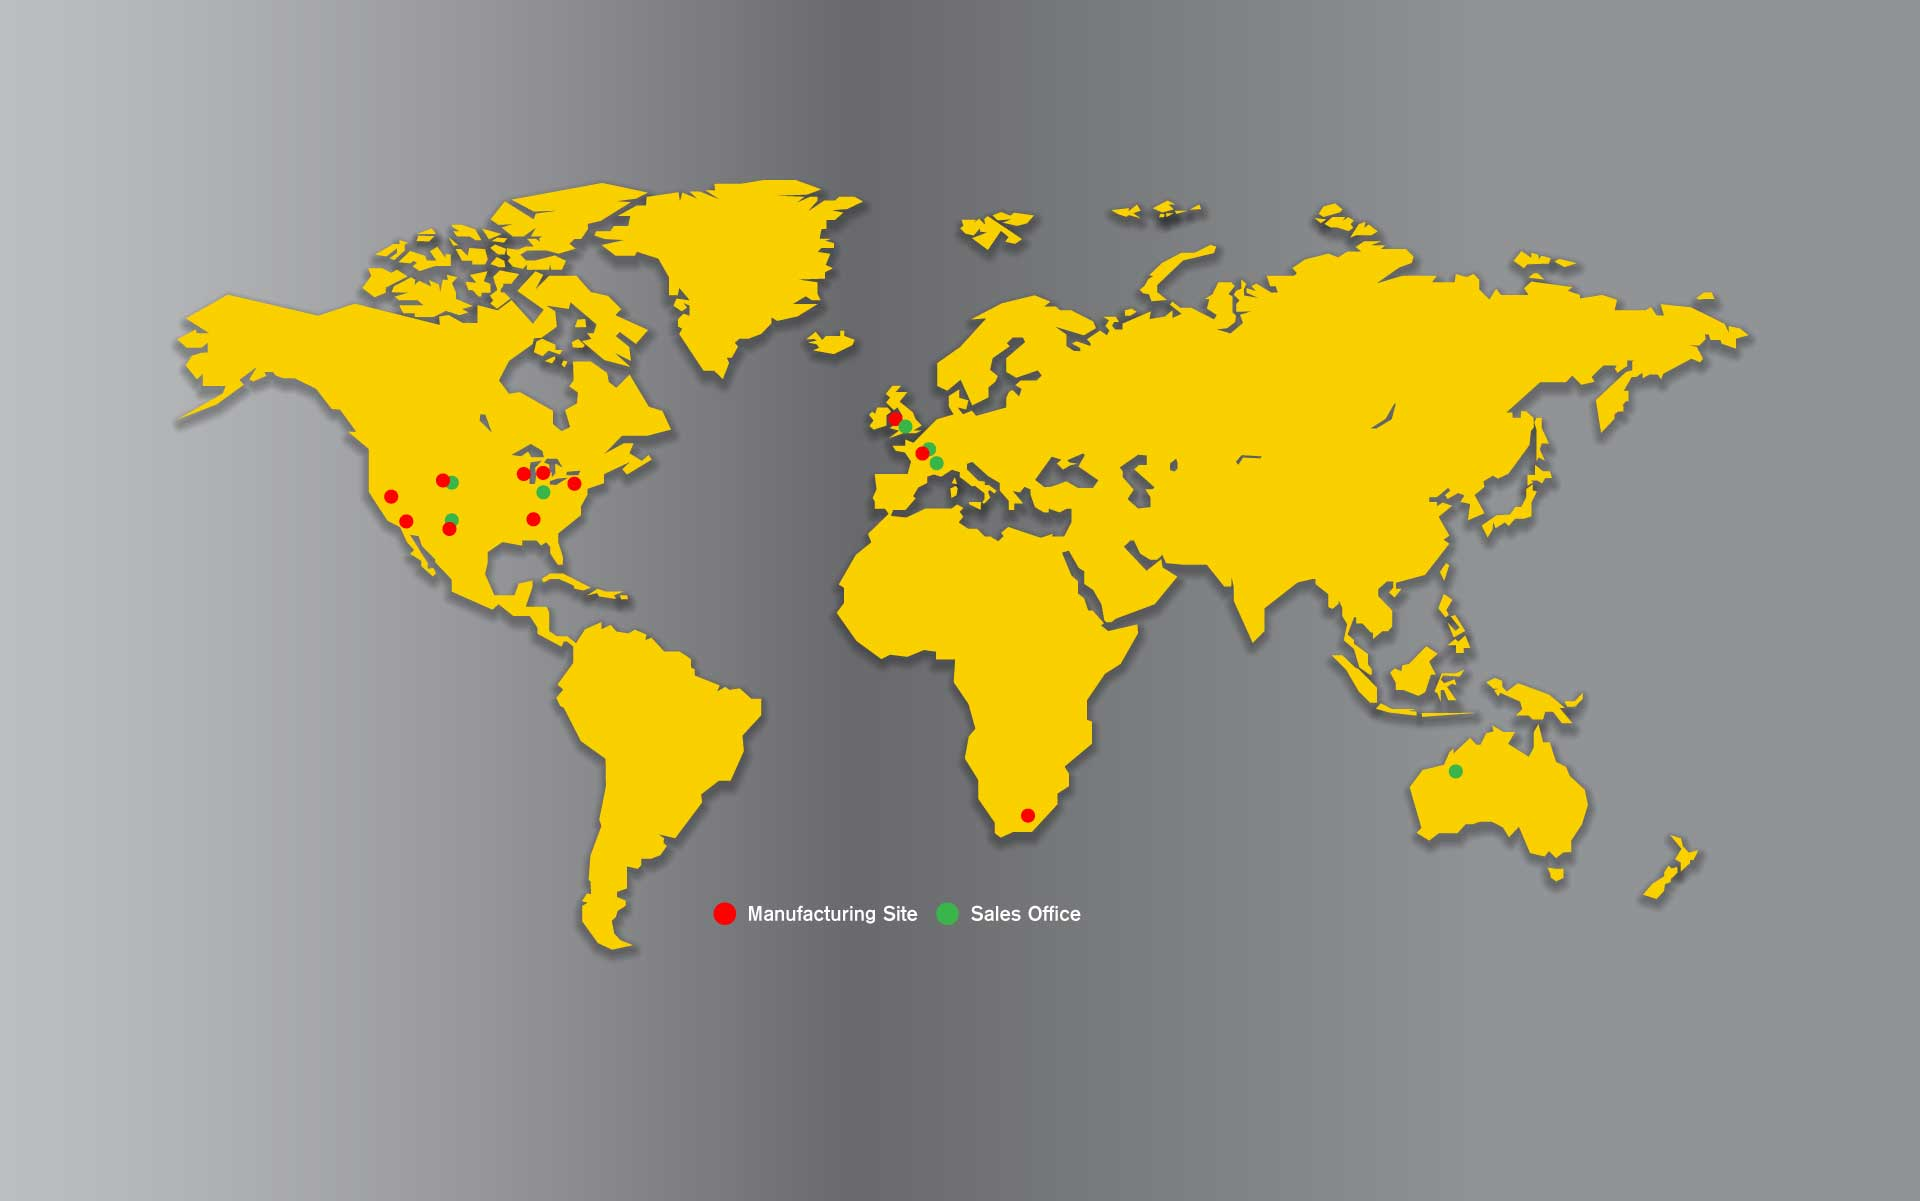 World map showing Macpactor manufacturing sites and sales offices